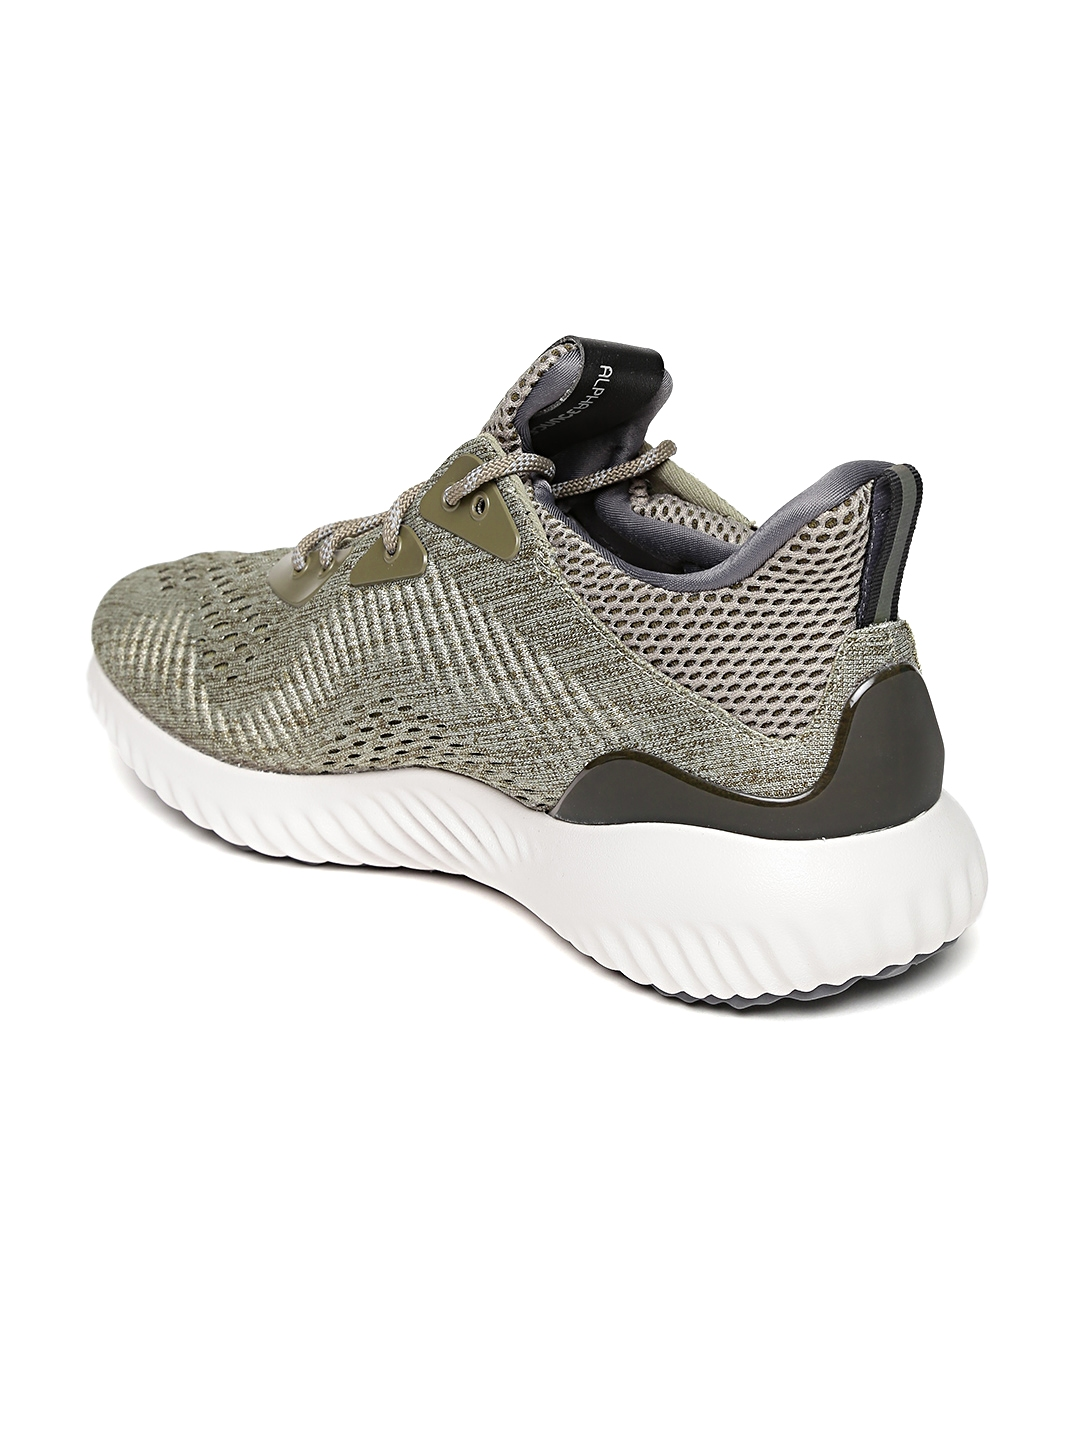 best website a638d 47db5 ADIDAS Men Olive Green Alphabounce Engineered Mesh Running Shoes